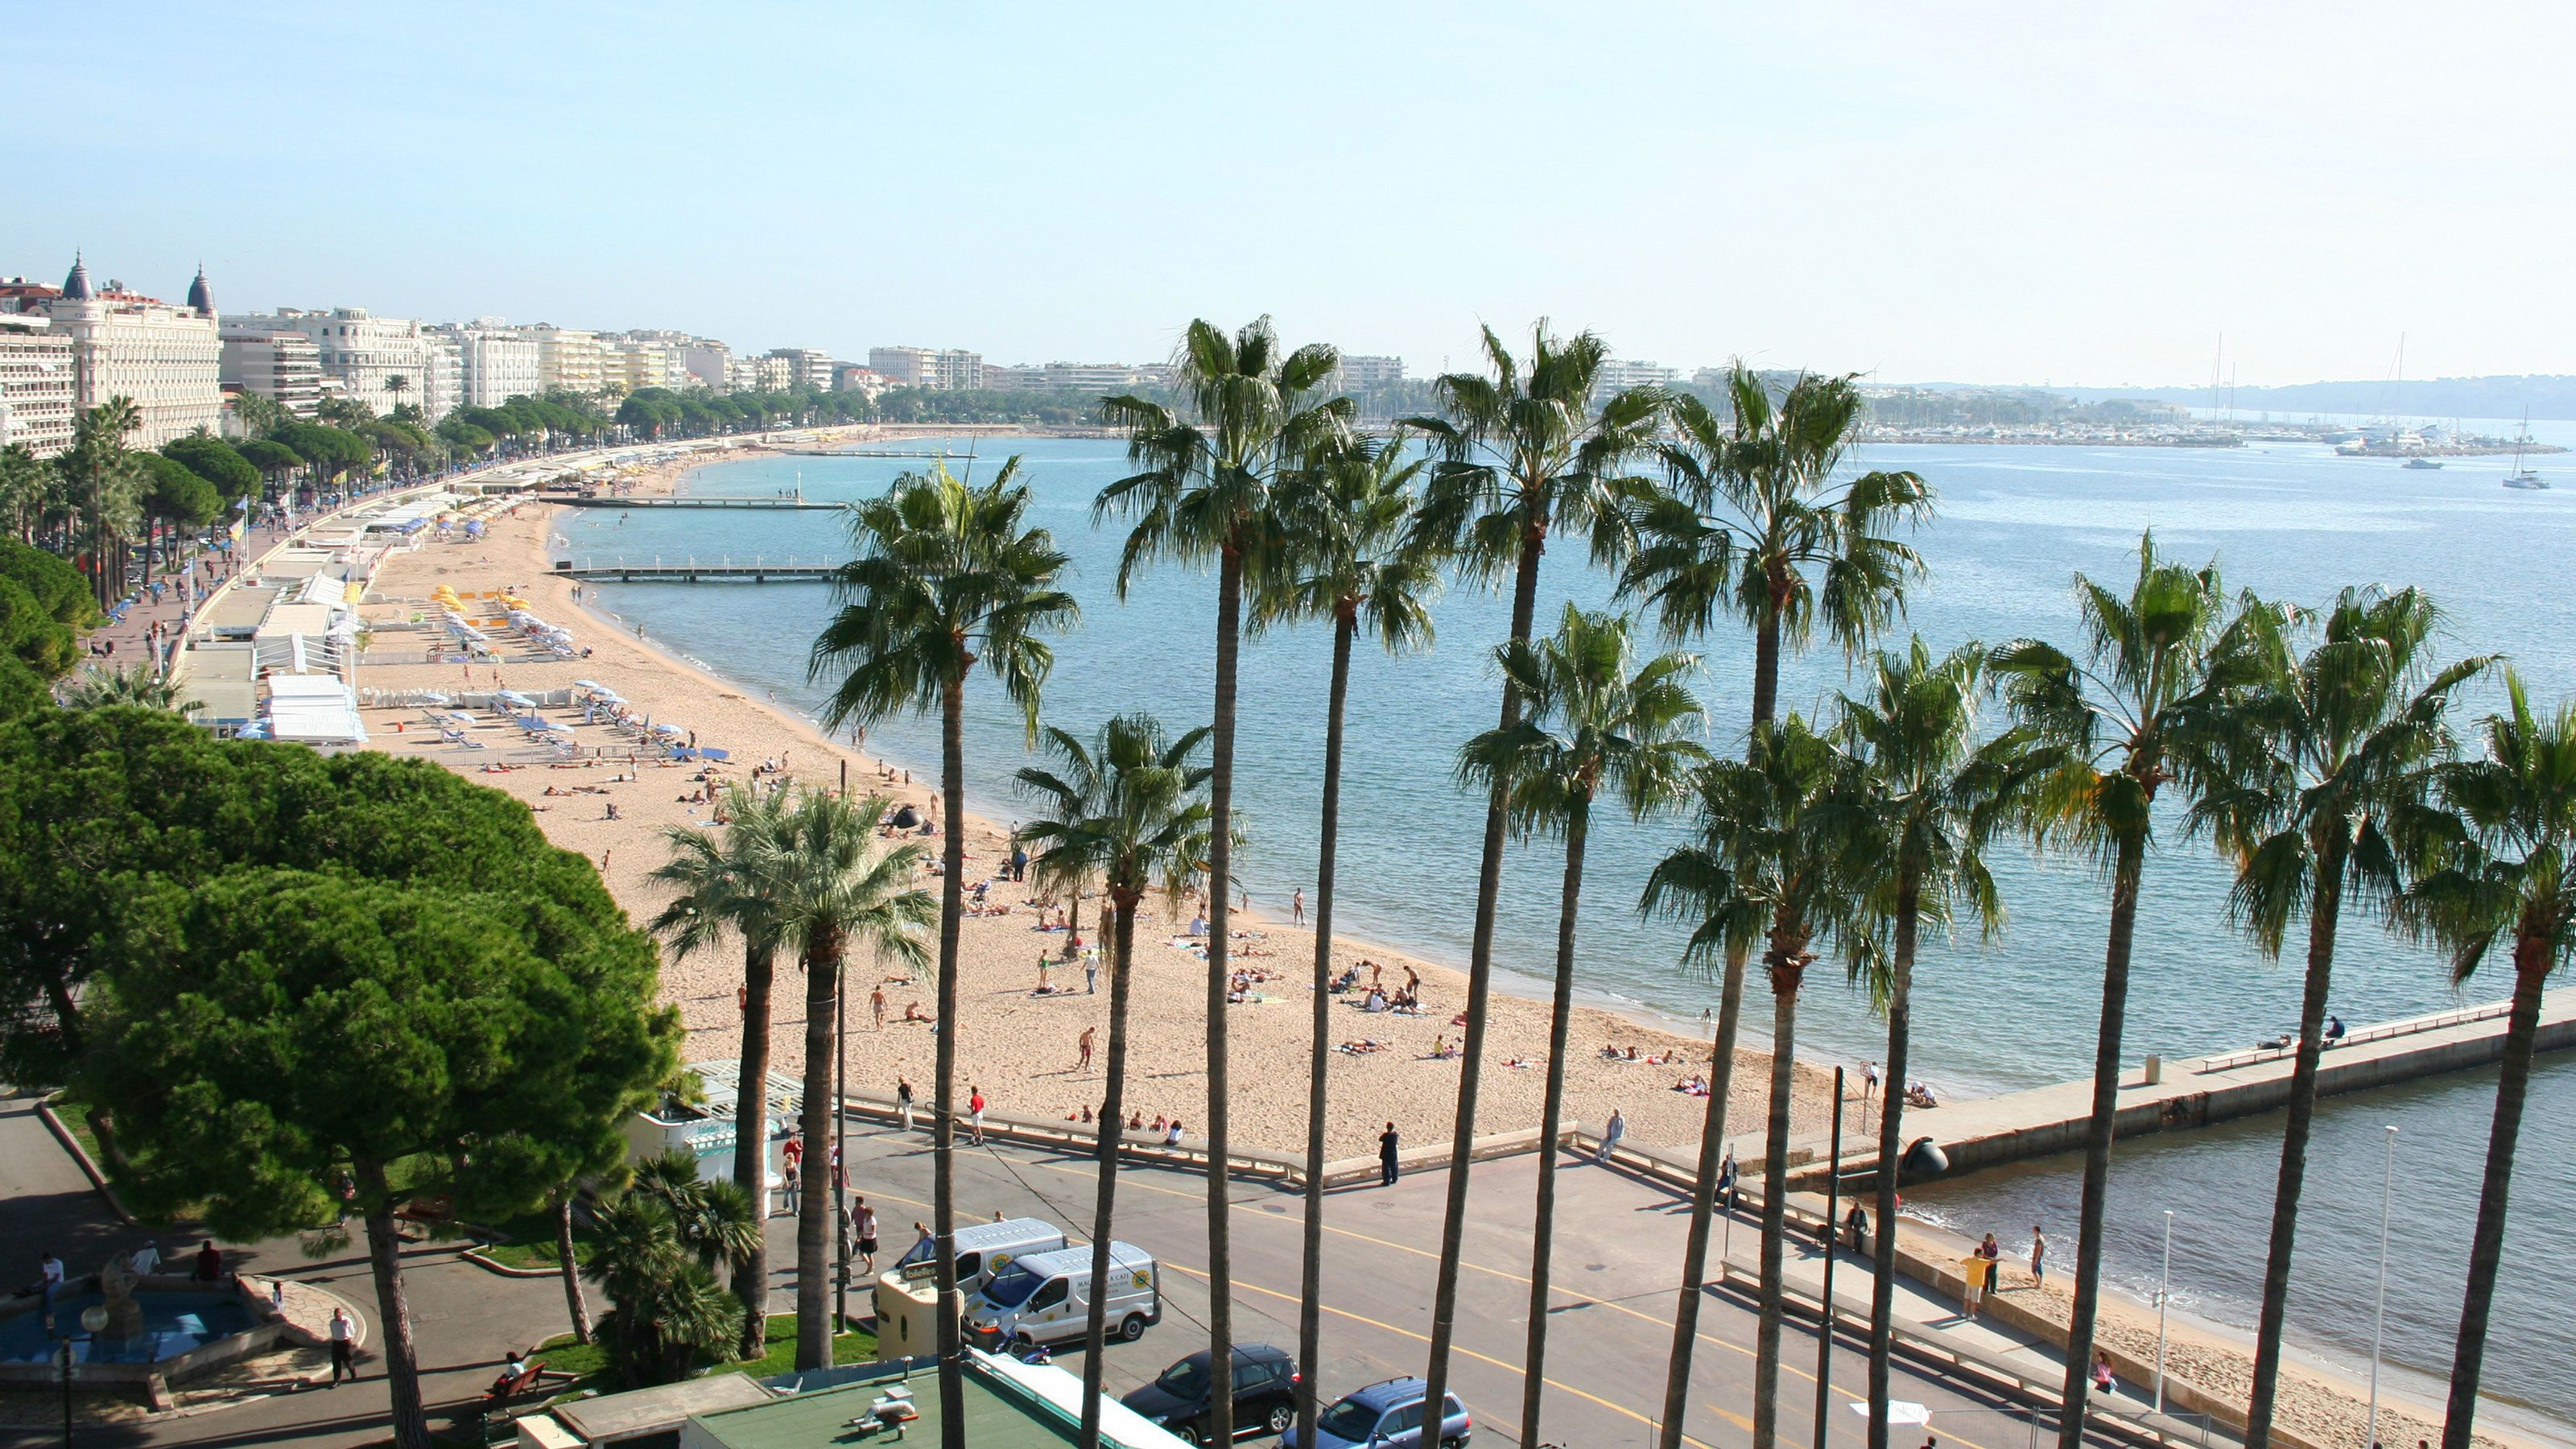 Gorgeous overhead view of Cannes